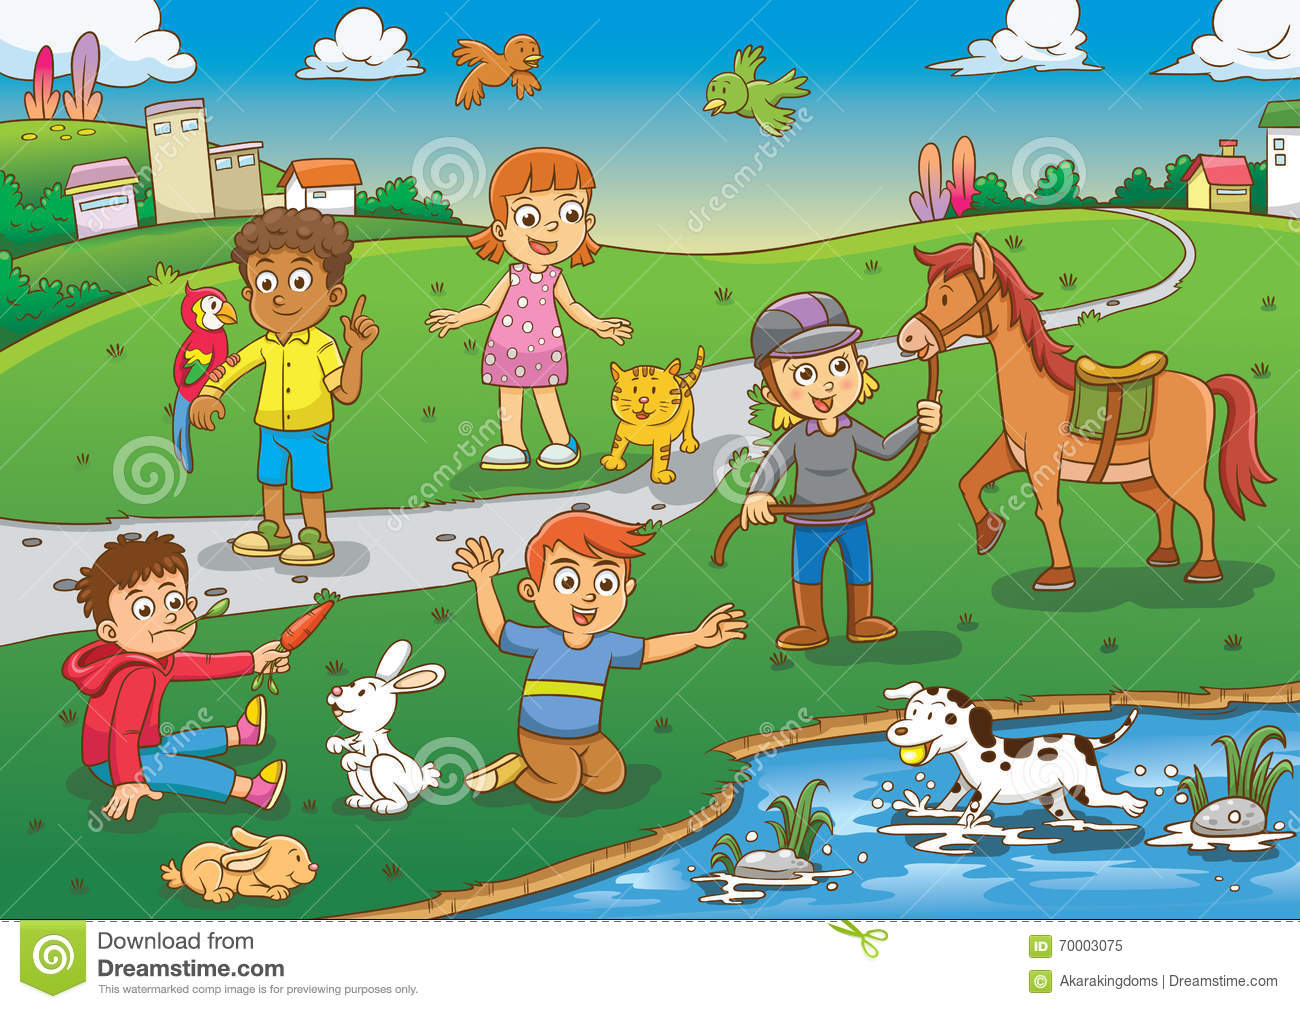 Child And Pet In The Park Cartoon Stock Vector - Image ...